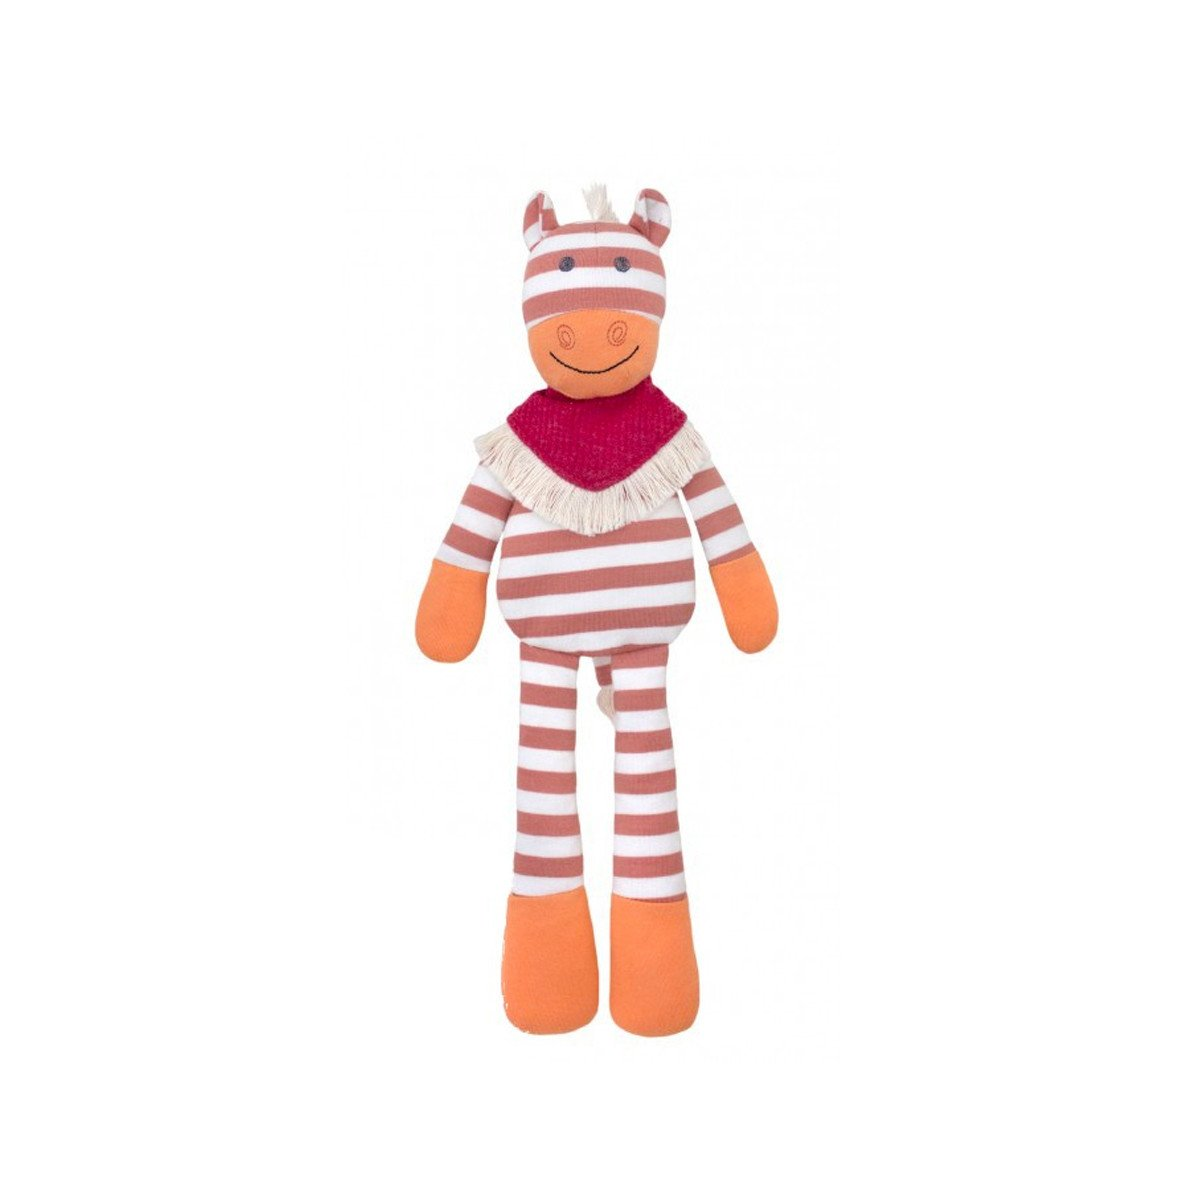 Apple Park Organic Plush Toy Apple Park Organic Baby Gifts Poncho Pony at Little Earth Nest Eco Shop